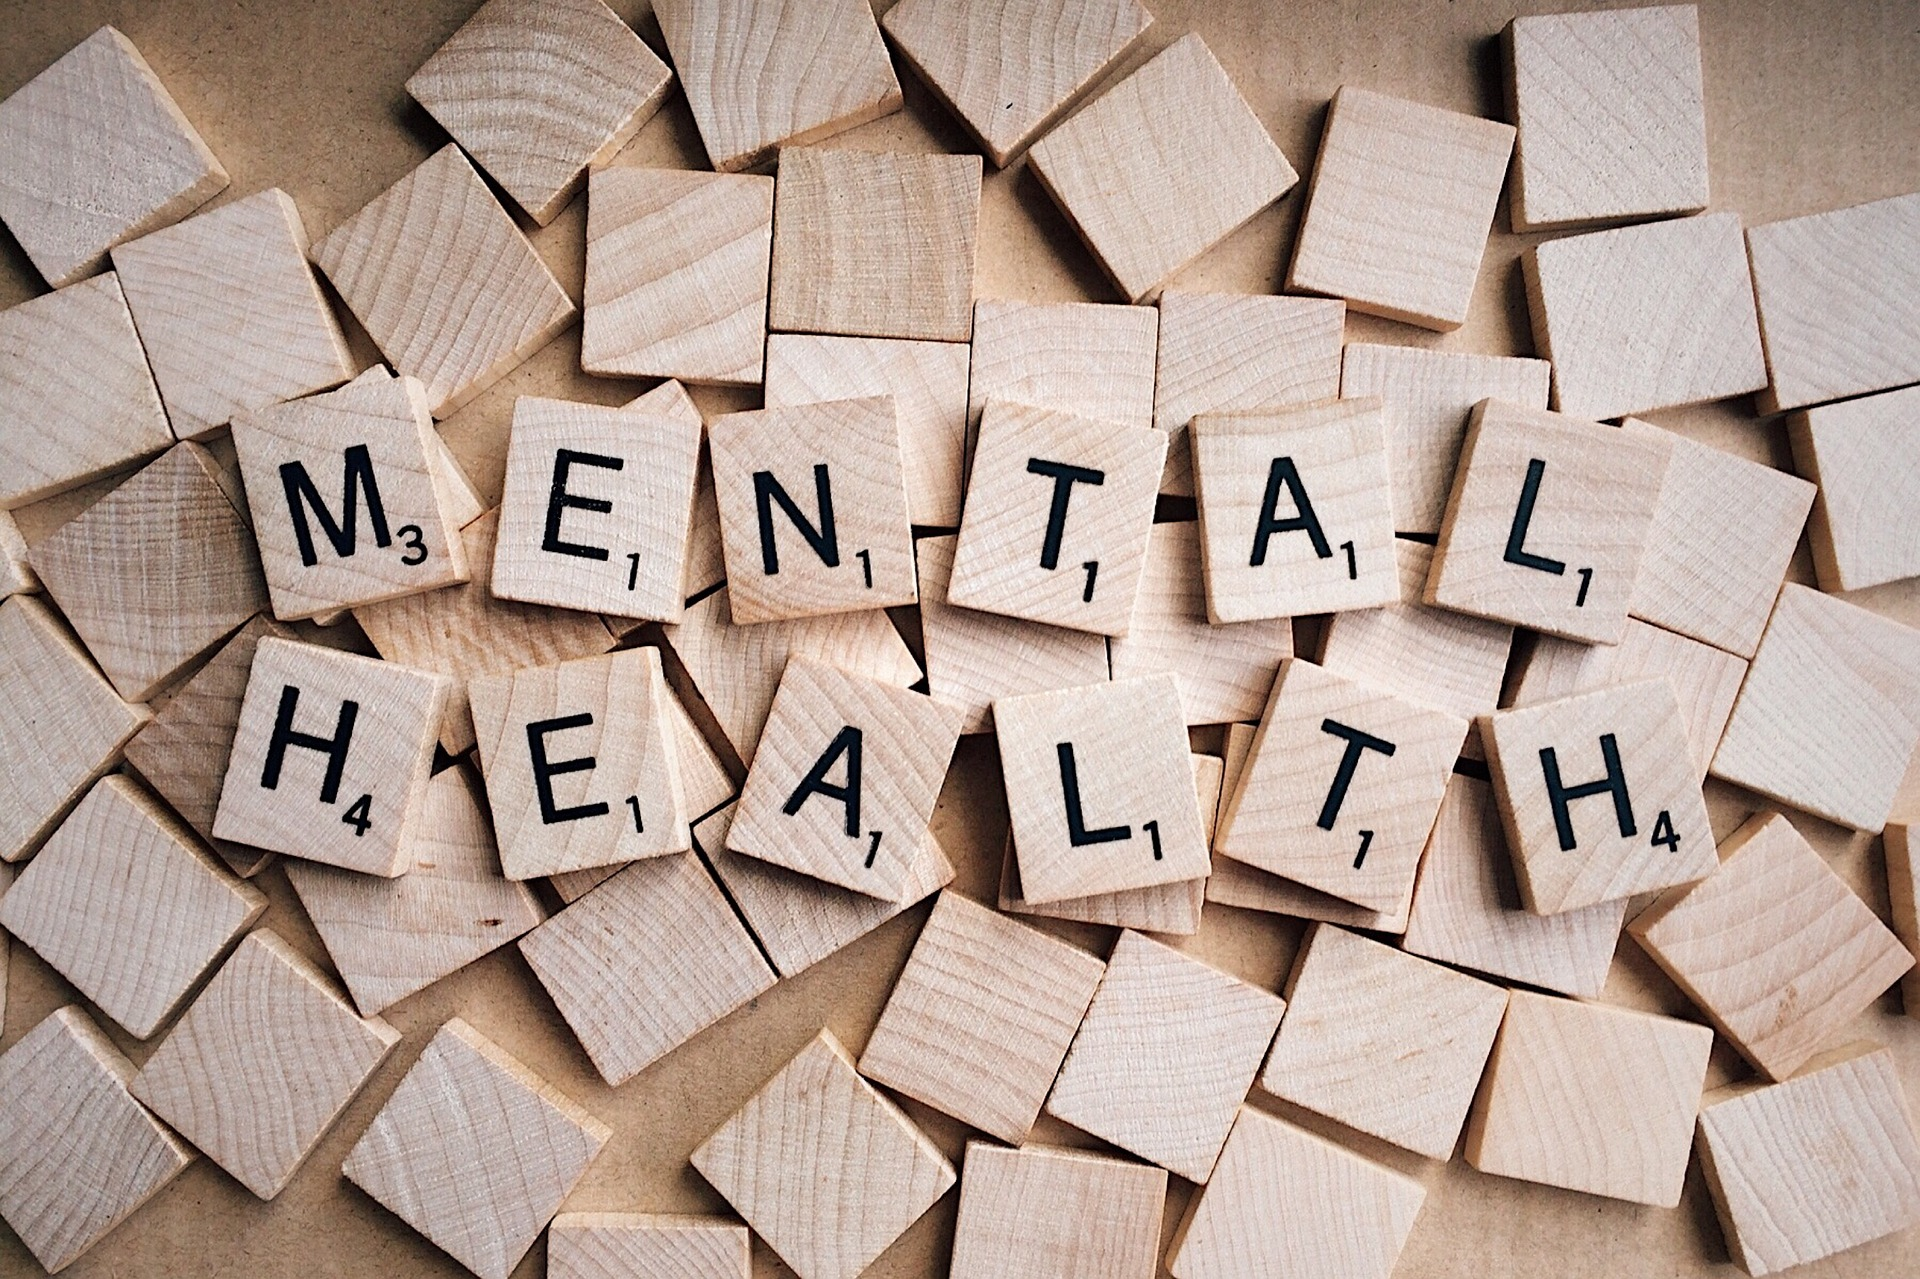 World Mental Health Day, 3 thoughts to reflect